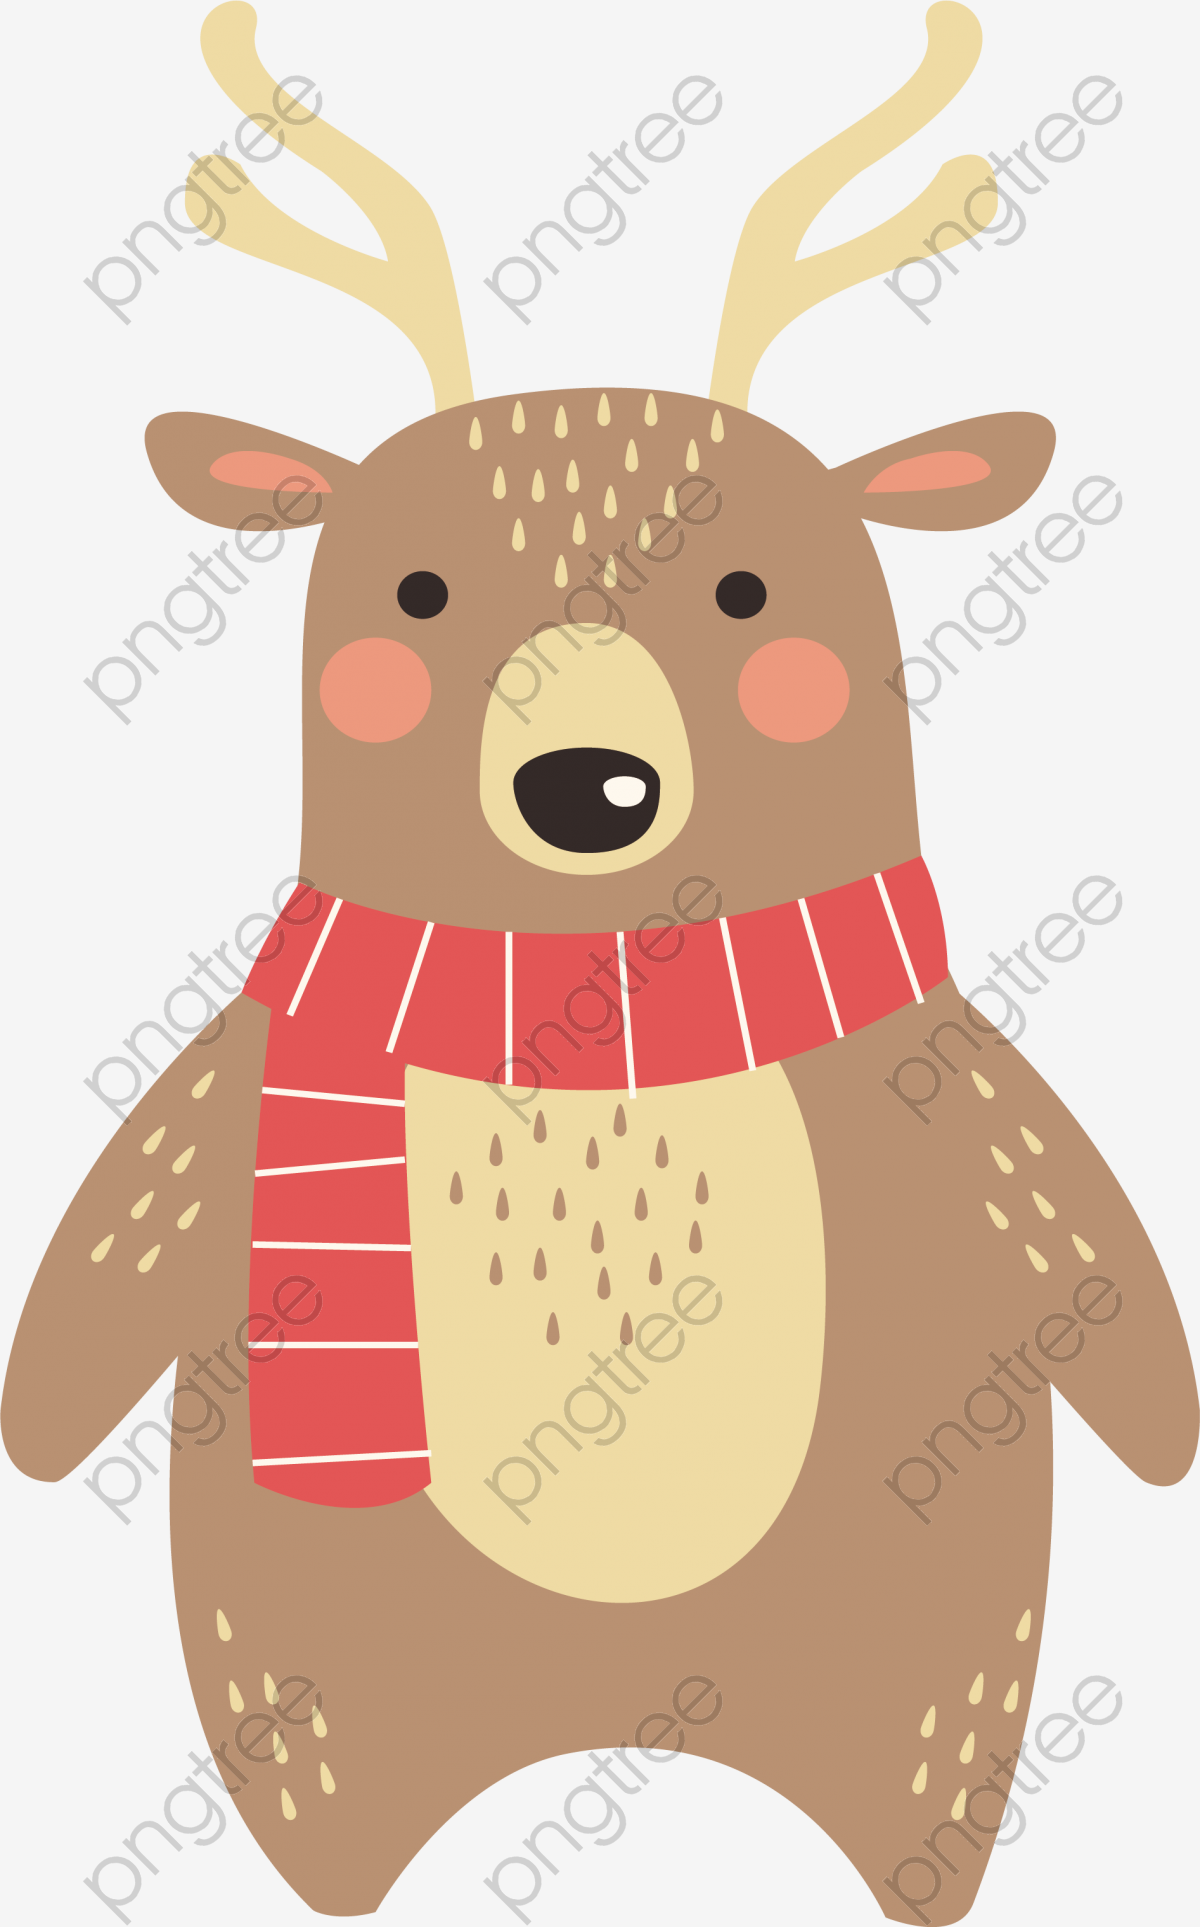 Transparent reindeer with scarves PNG Format Image With Size 1893.